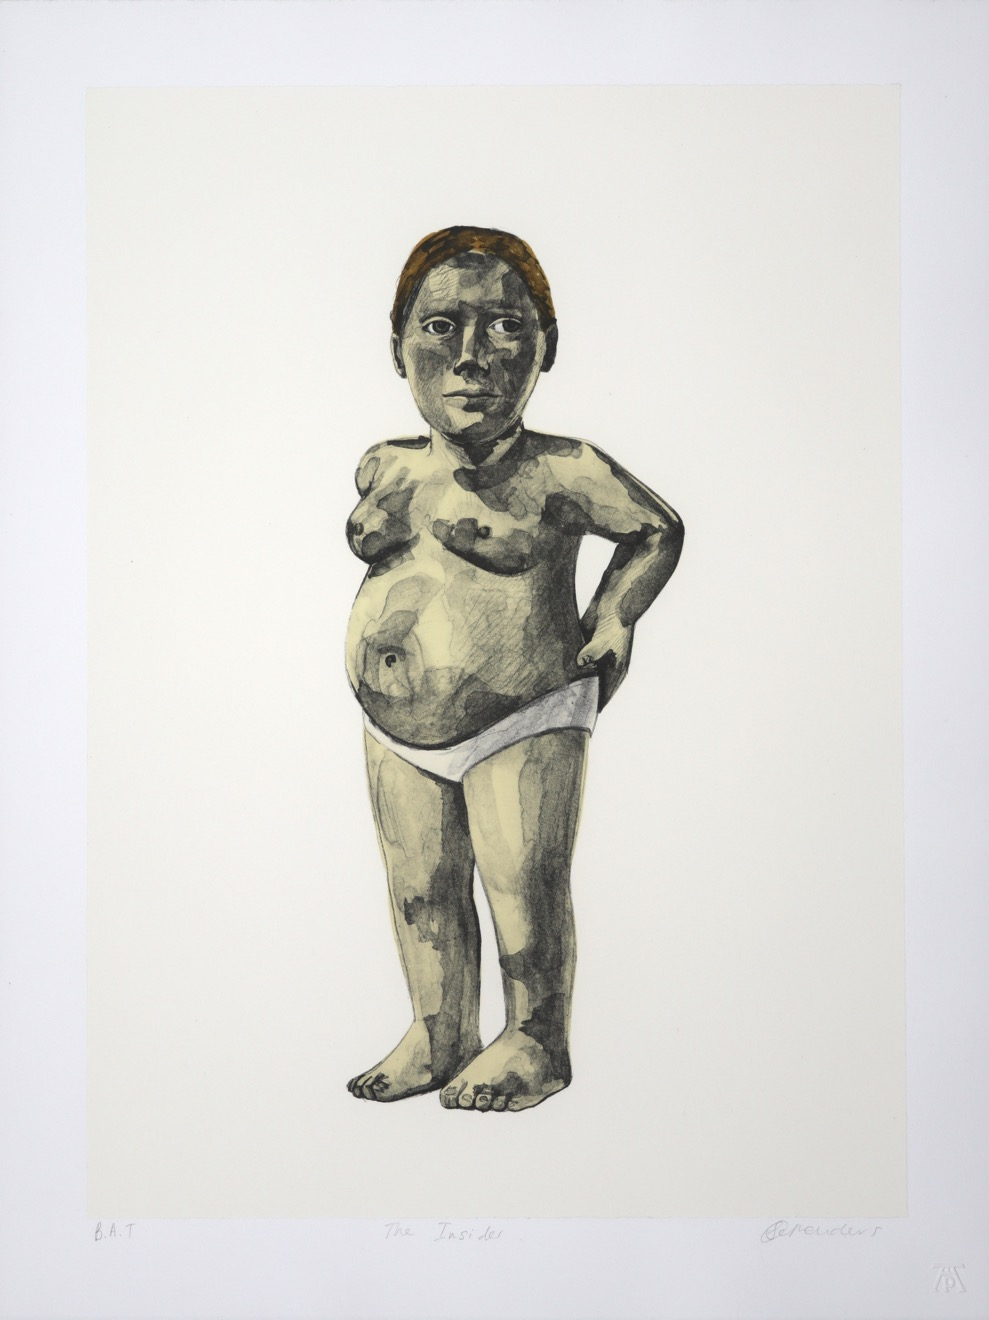 standing figure of a pregnant woman facing viewer, naked except for panties